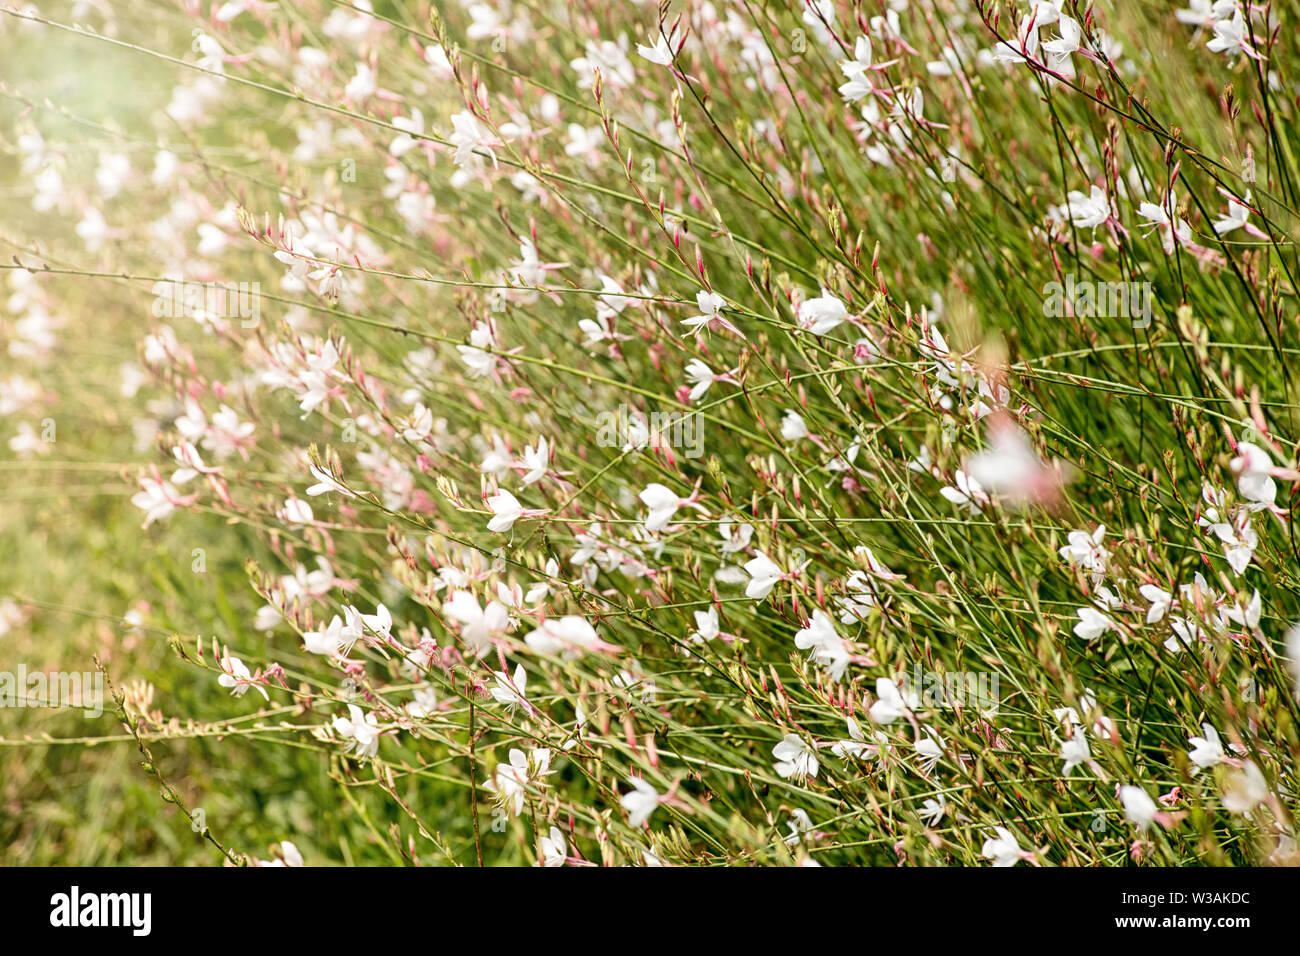 Pretty pink Gaura flowers blooming in summer, a popular garden perennial with a long flowering period and dainty star-shaped flowers Stock Photo